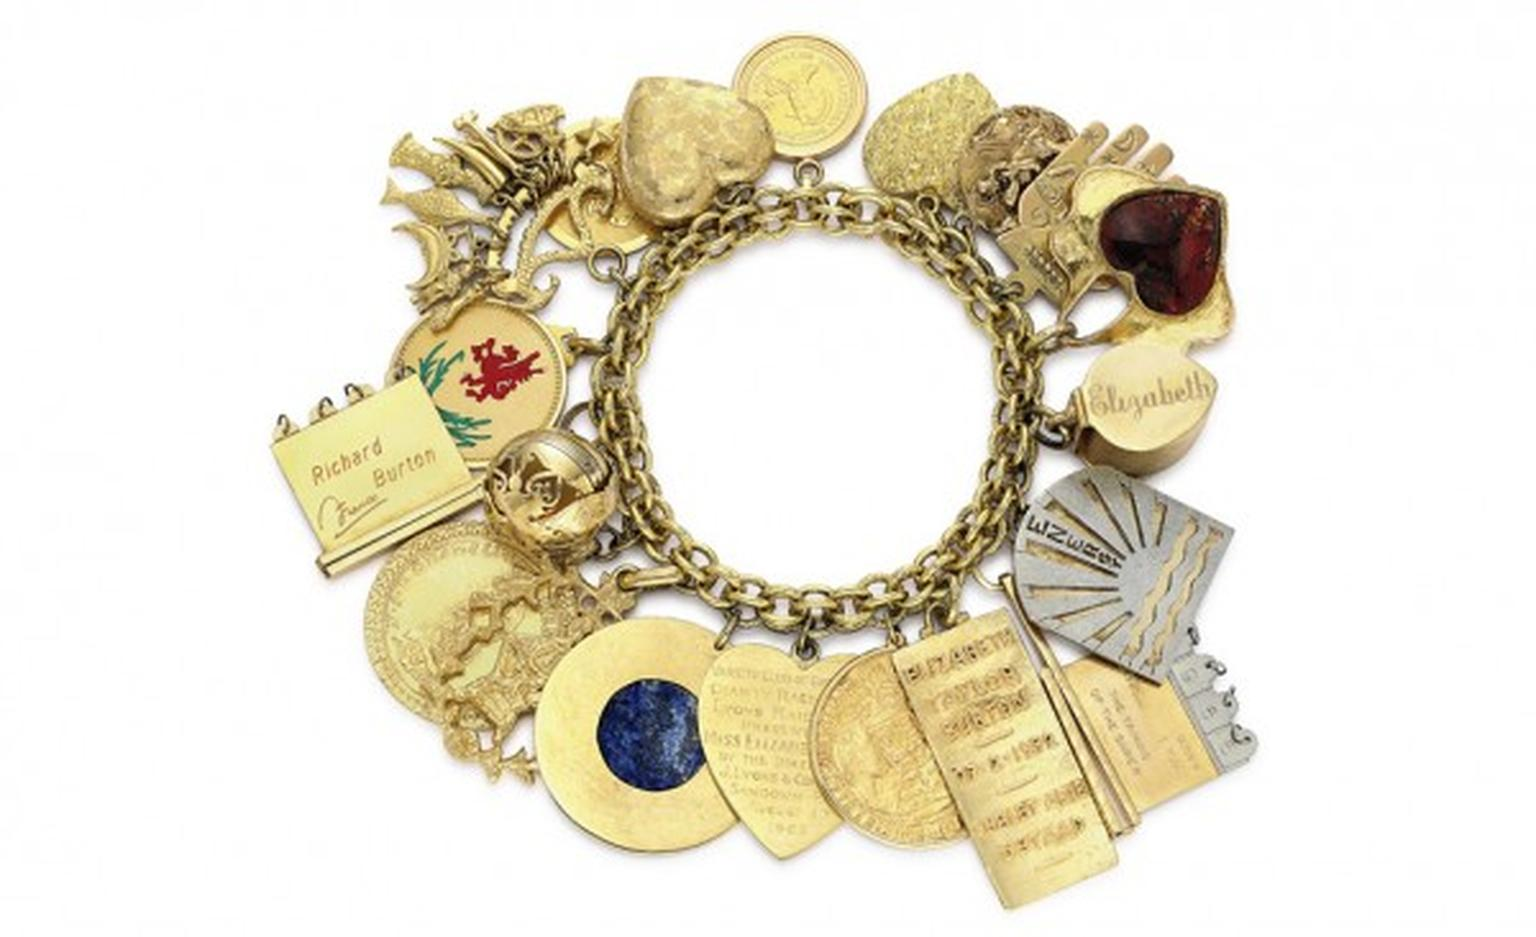 One of Liz Taylor's five charm bracelets in the auction.